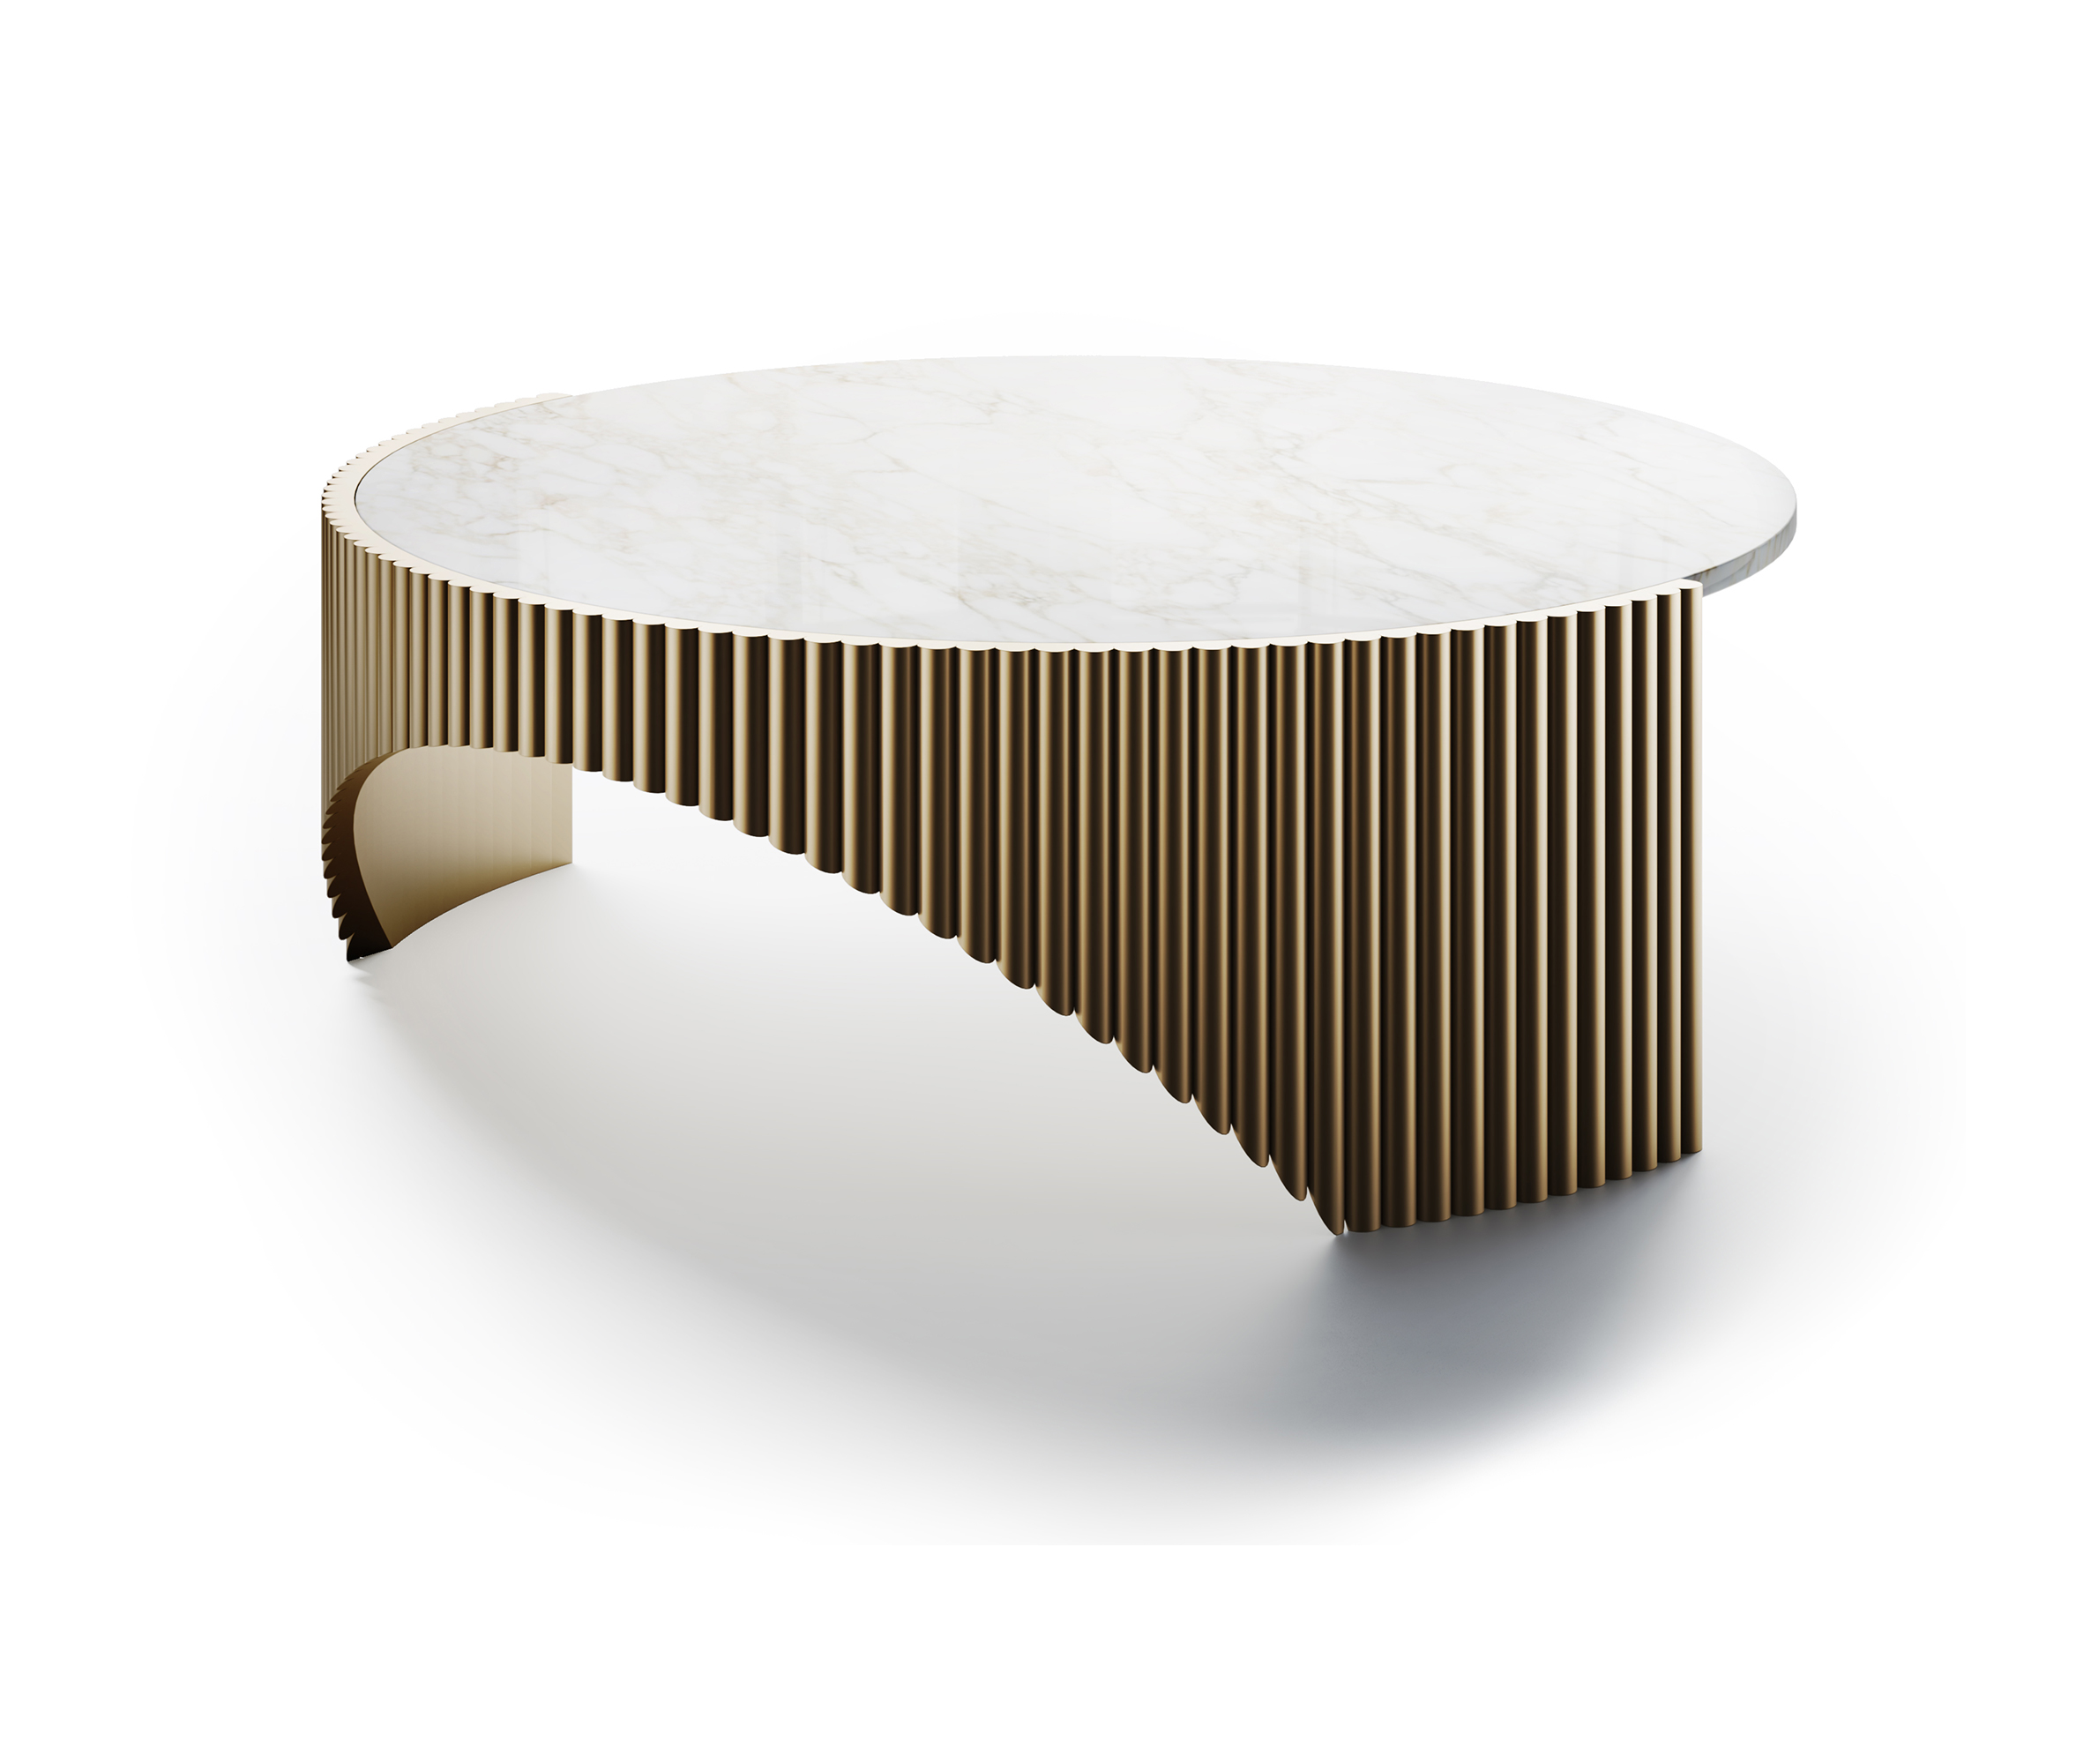 Cliff Young Ltd_Tosca Cocktail Table_int_products